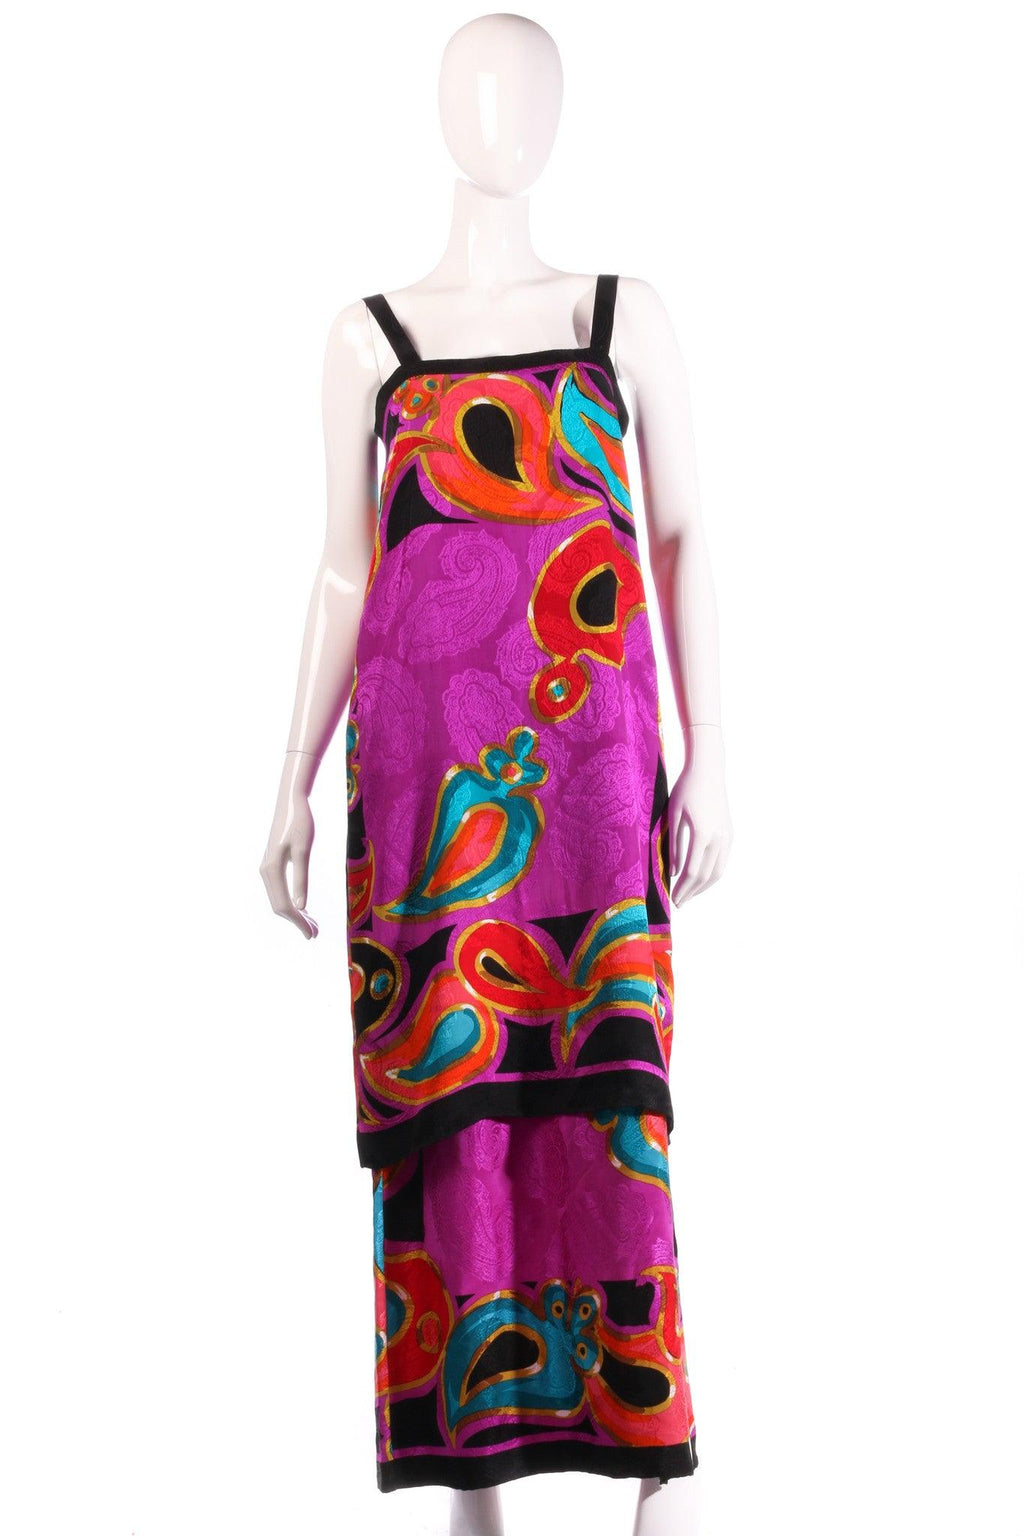 Brijo purple patterned dress, with additional top